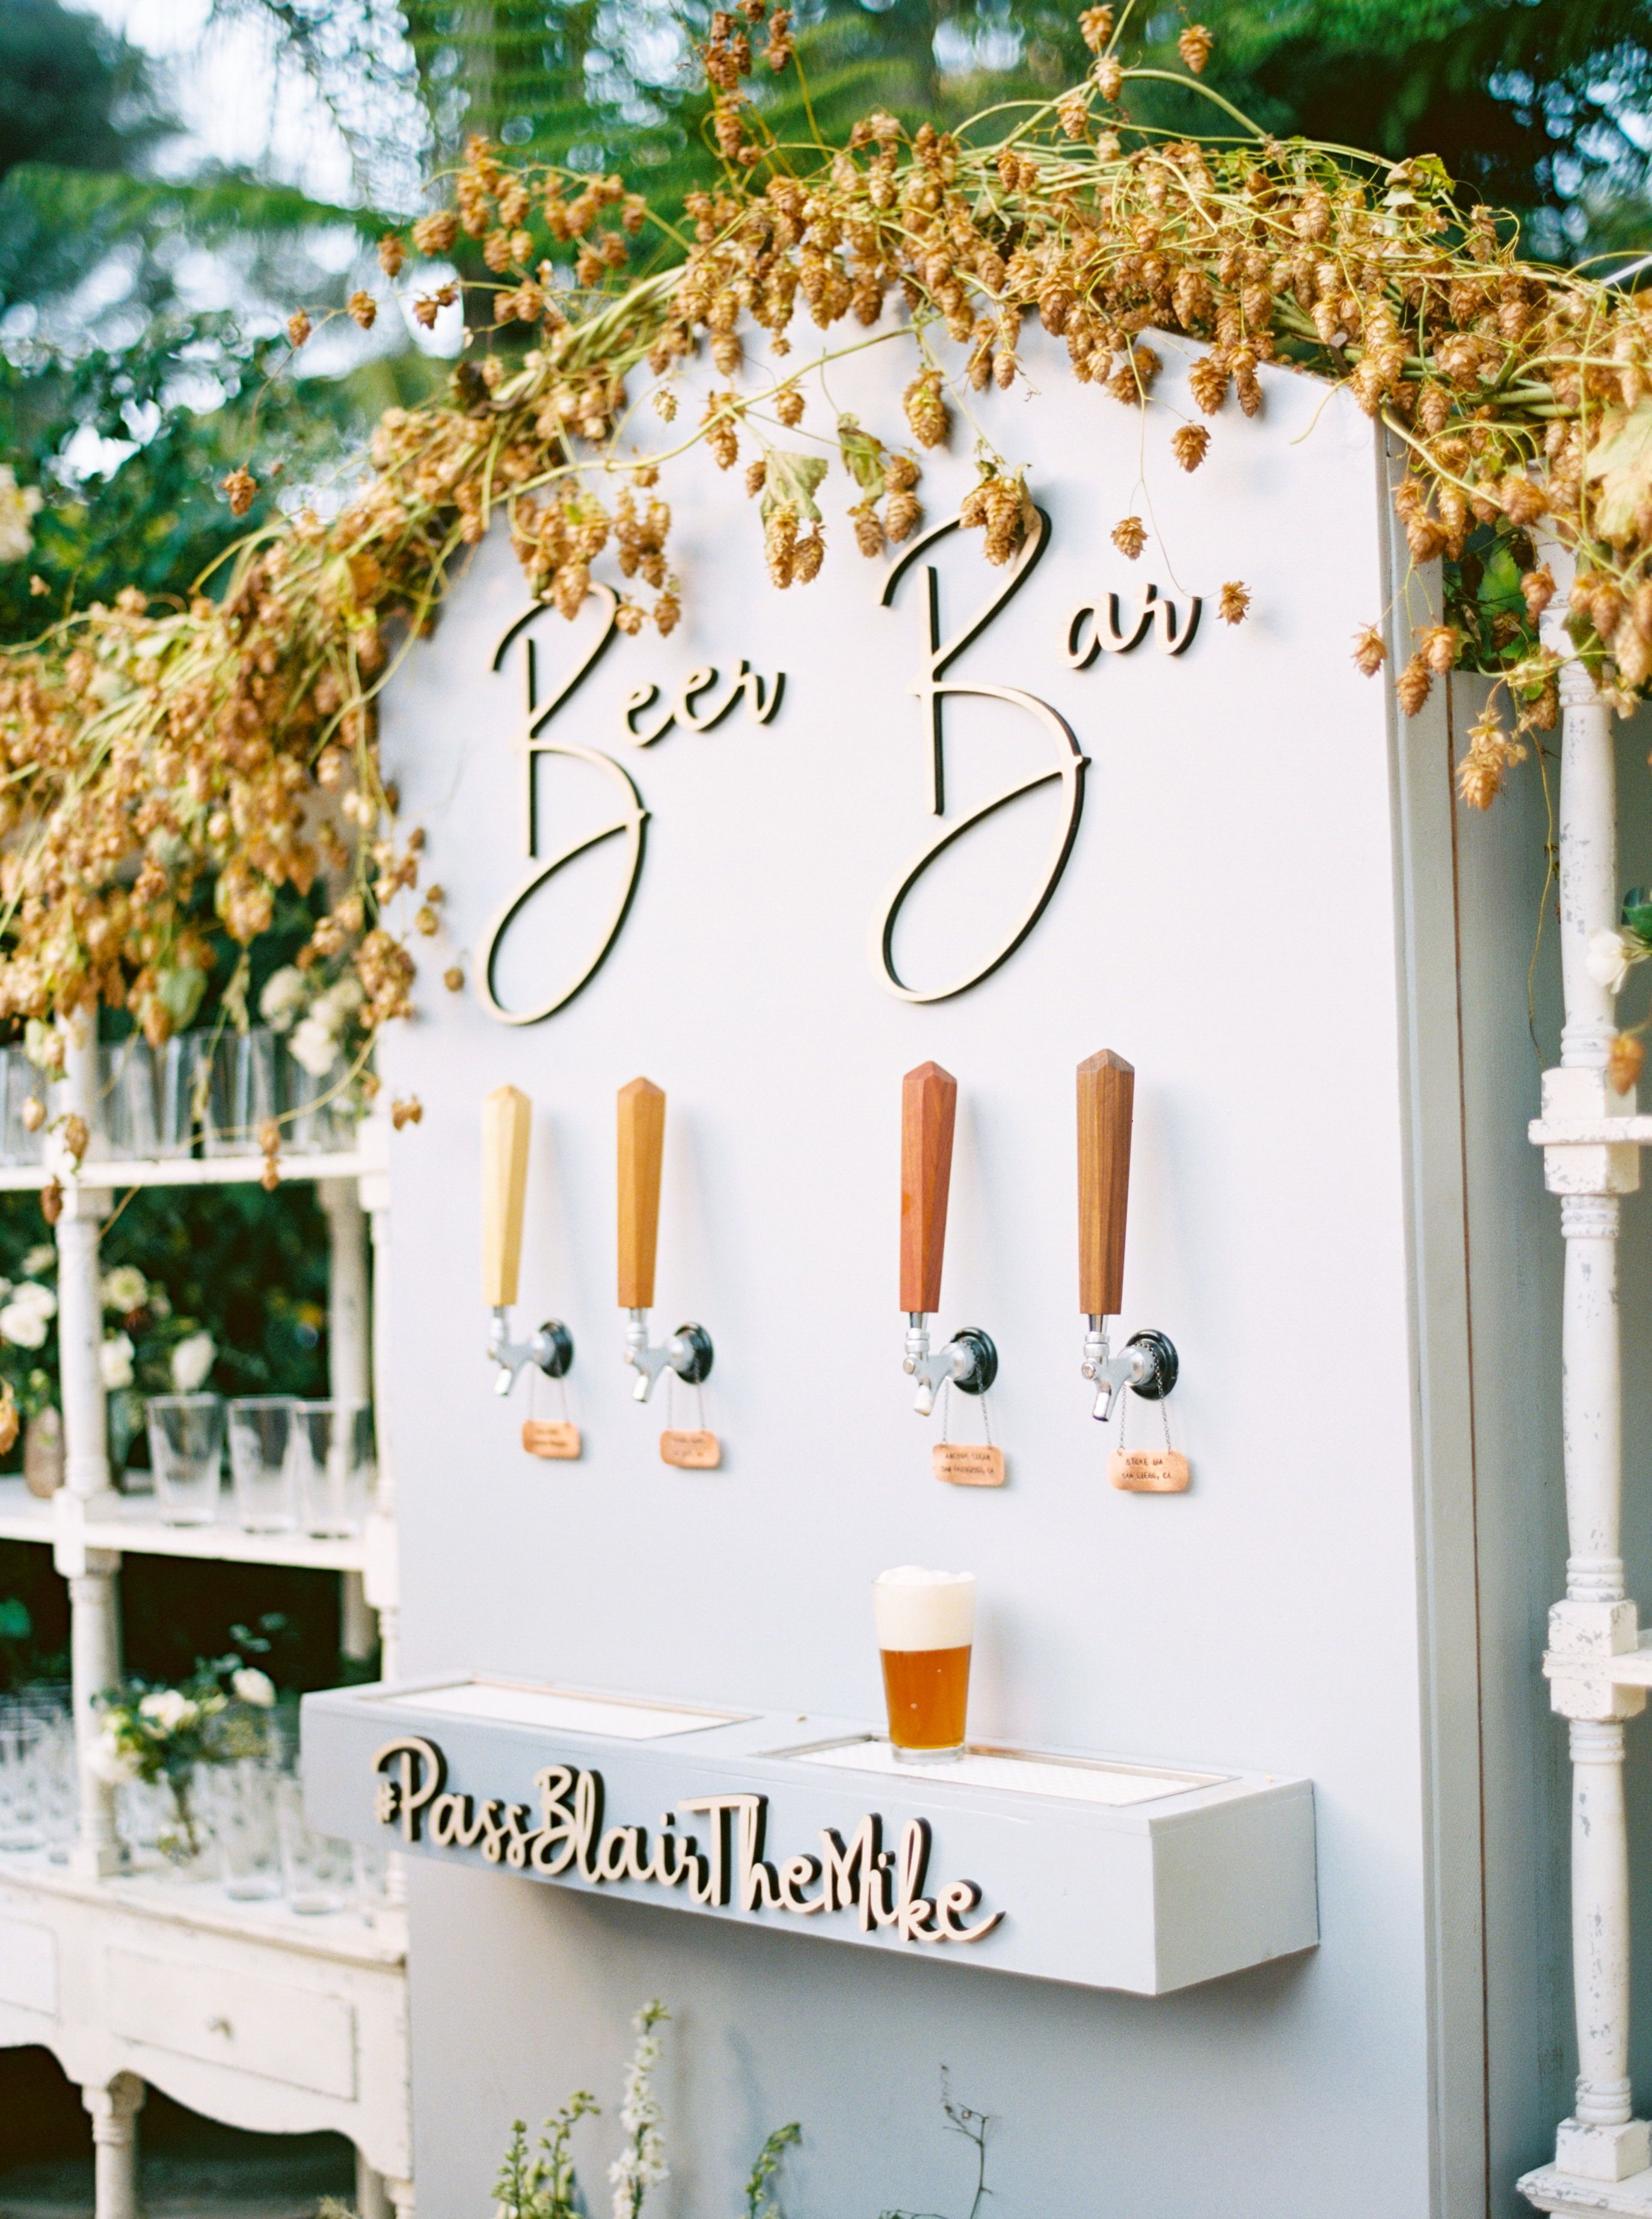 Wedding rehearsal dinners are getting more and more trendy - here are 28 wedding…